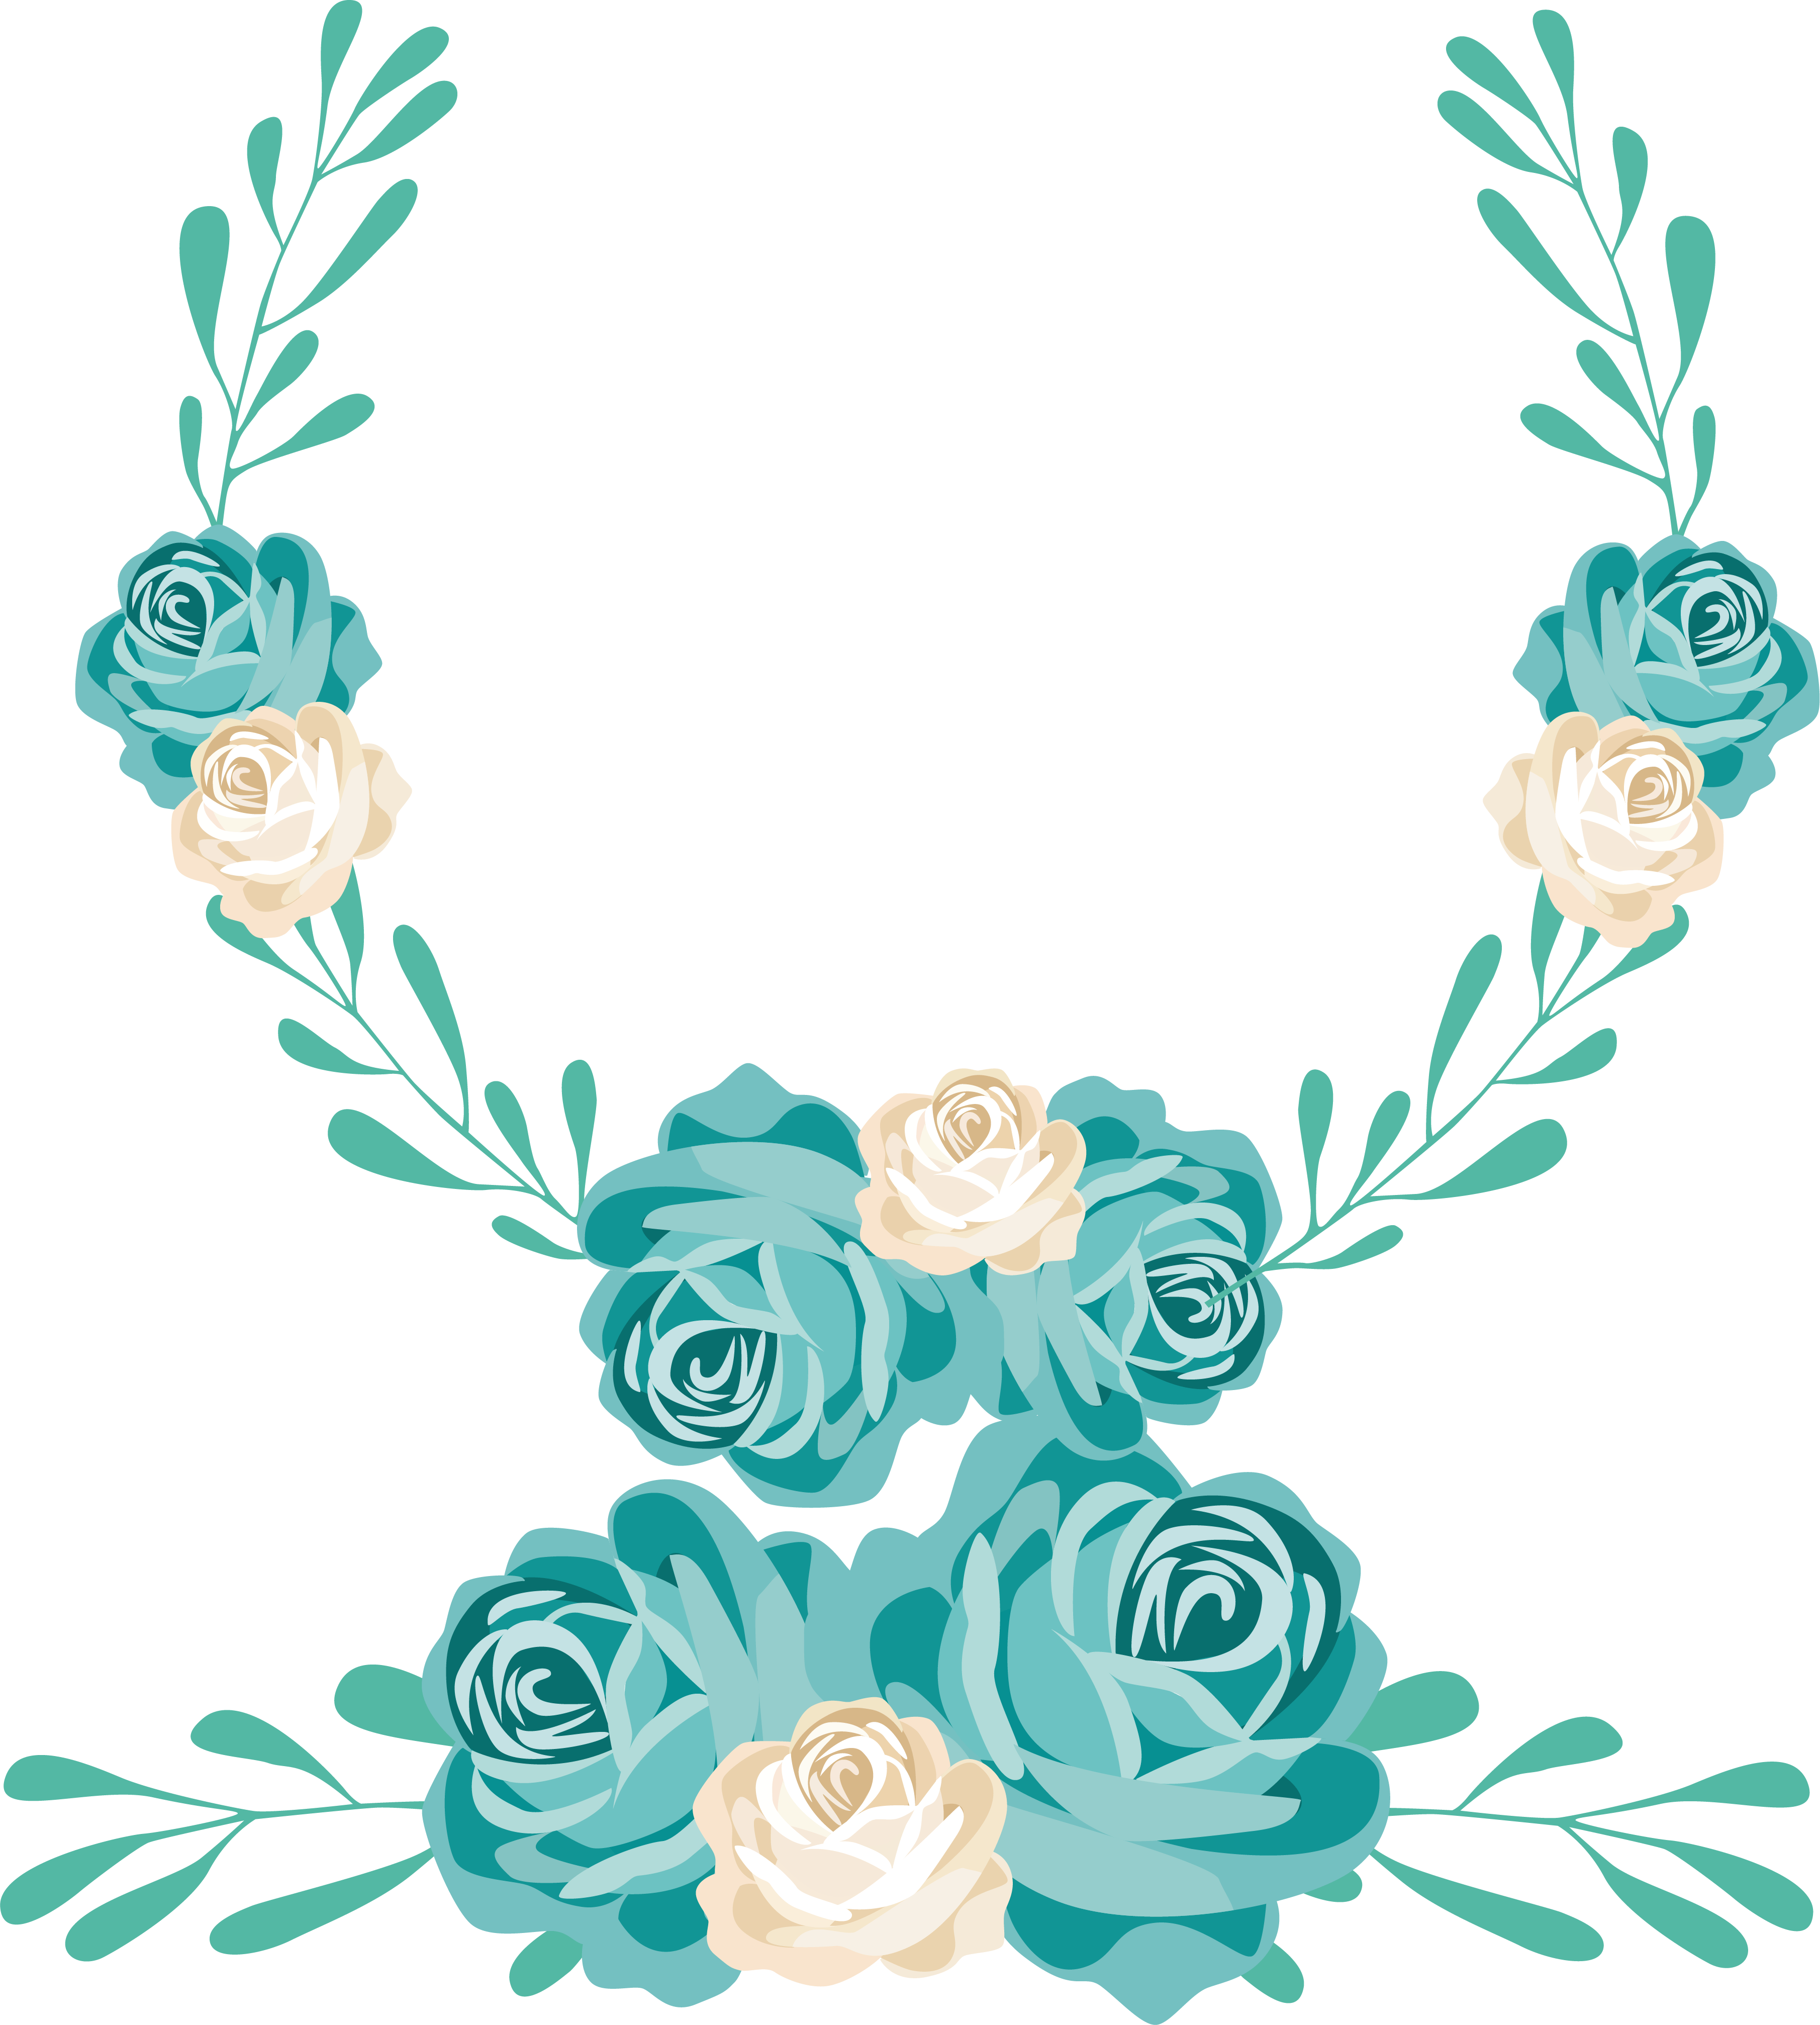 Turquoise flower png. Cartoon hand painted wedding